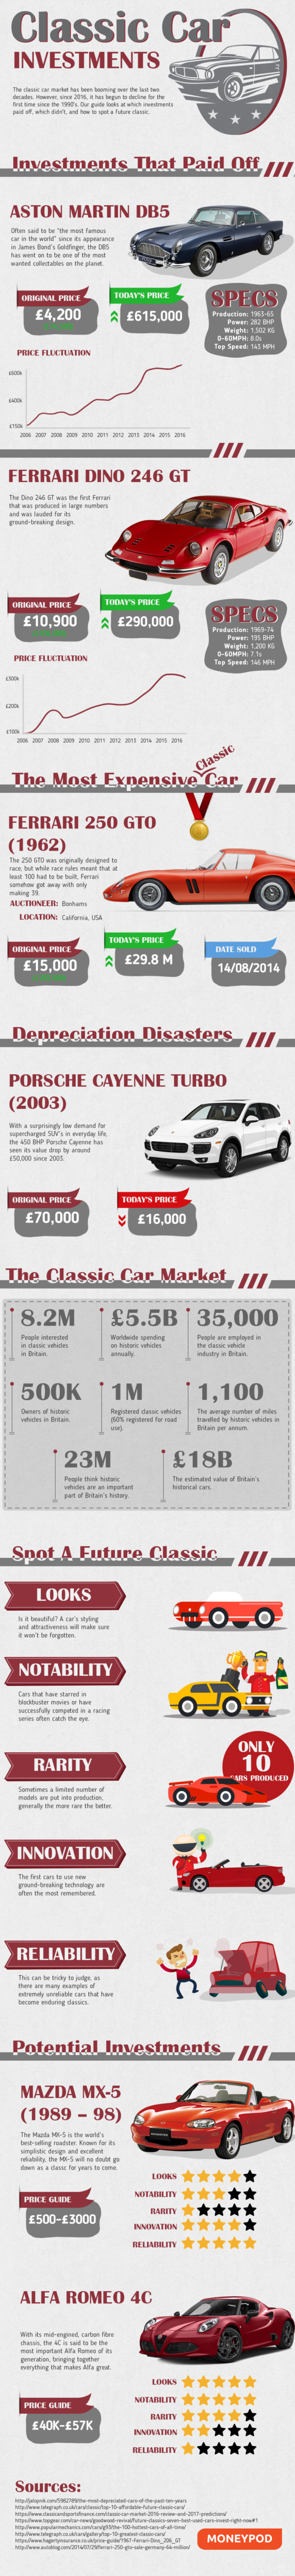 Classic Car Investments